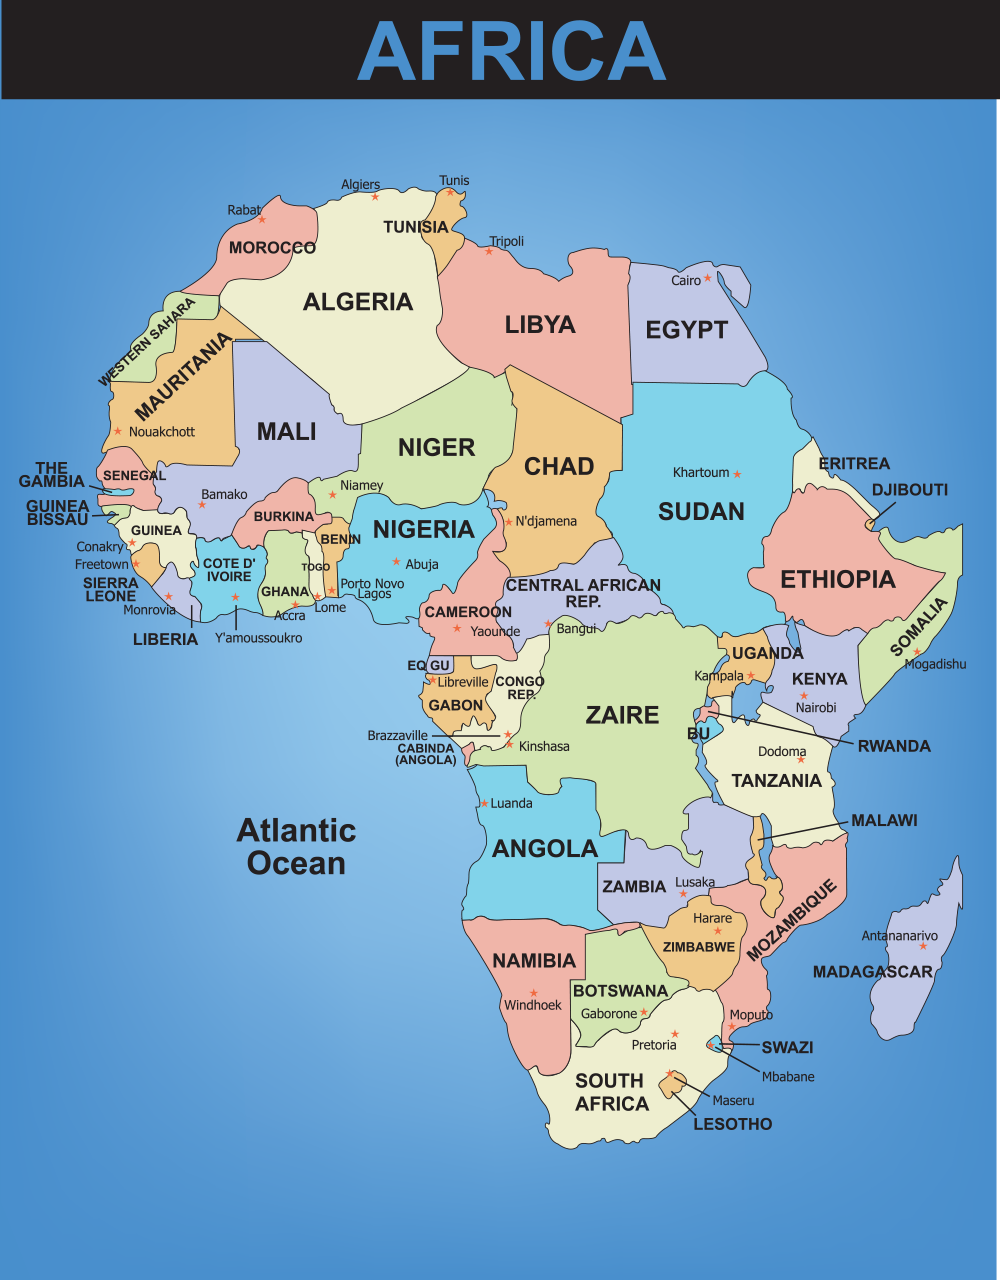 map of africa with capital cities      Free Wallpaper for MAPS   Full Maps Africa Maps Maps of Africa OnTheWorldMap com Africa Map African Country  Capitals Map Quiz Large K Political Map of Africa Africa Political Map US  Map